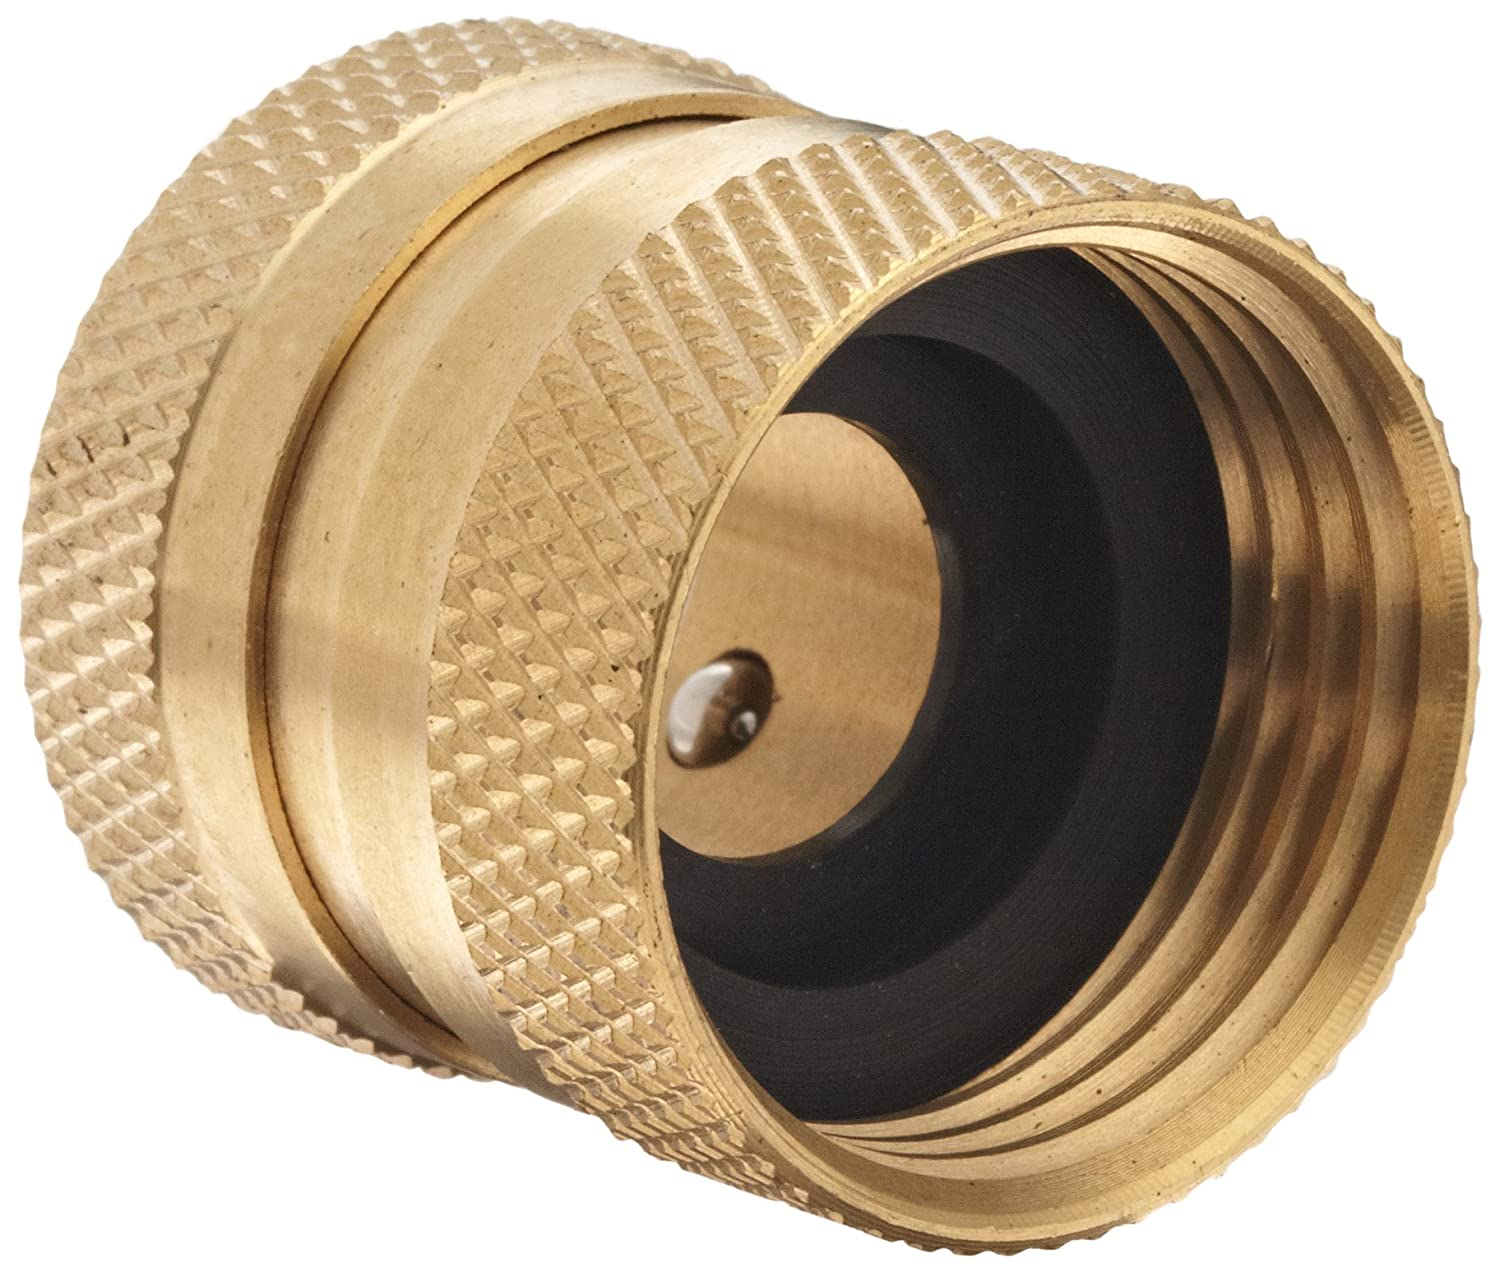 Dixon Dgh7c Brass Quick Connect Fitting Garden Hose Female Coupler 200 Psi Pre